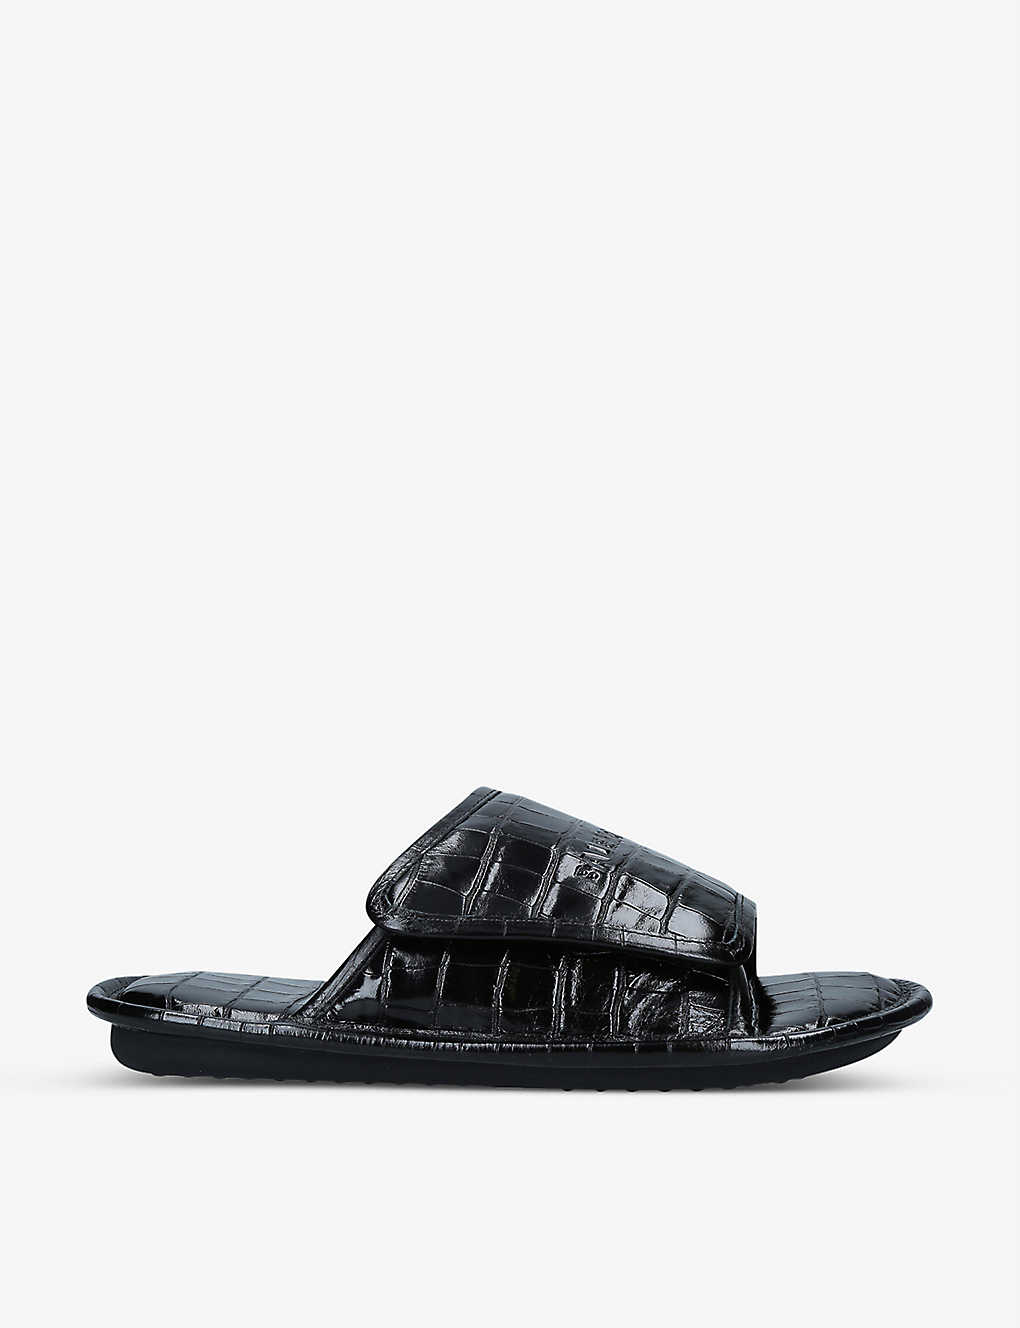 Balenciaga HOME CROC-EMBOSSED LEATHER SLIDERS